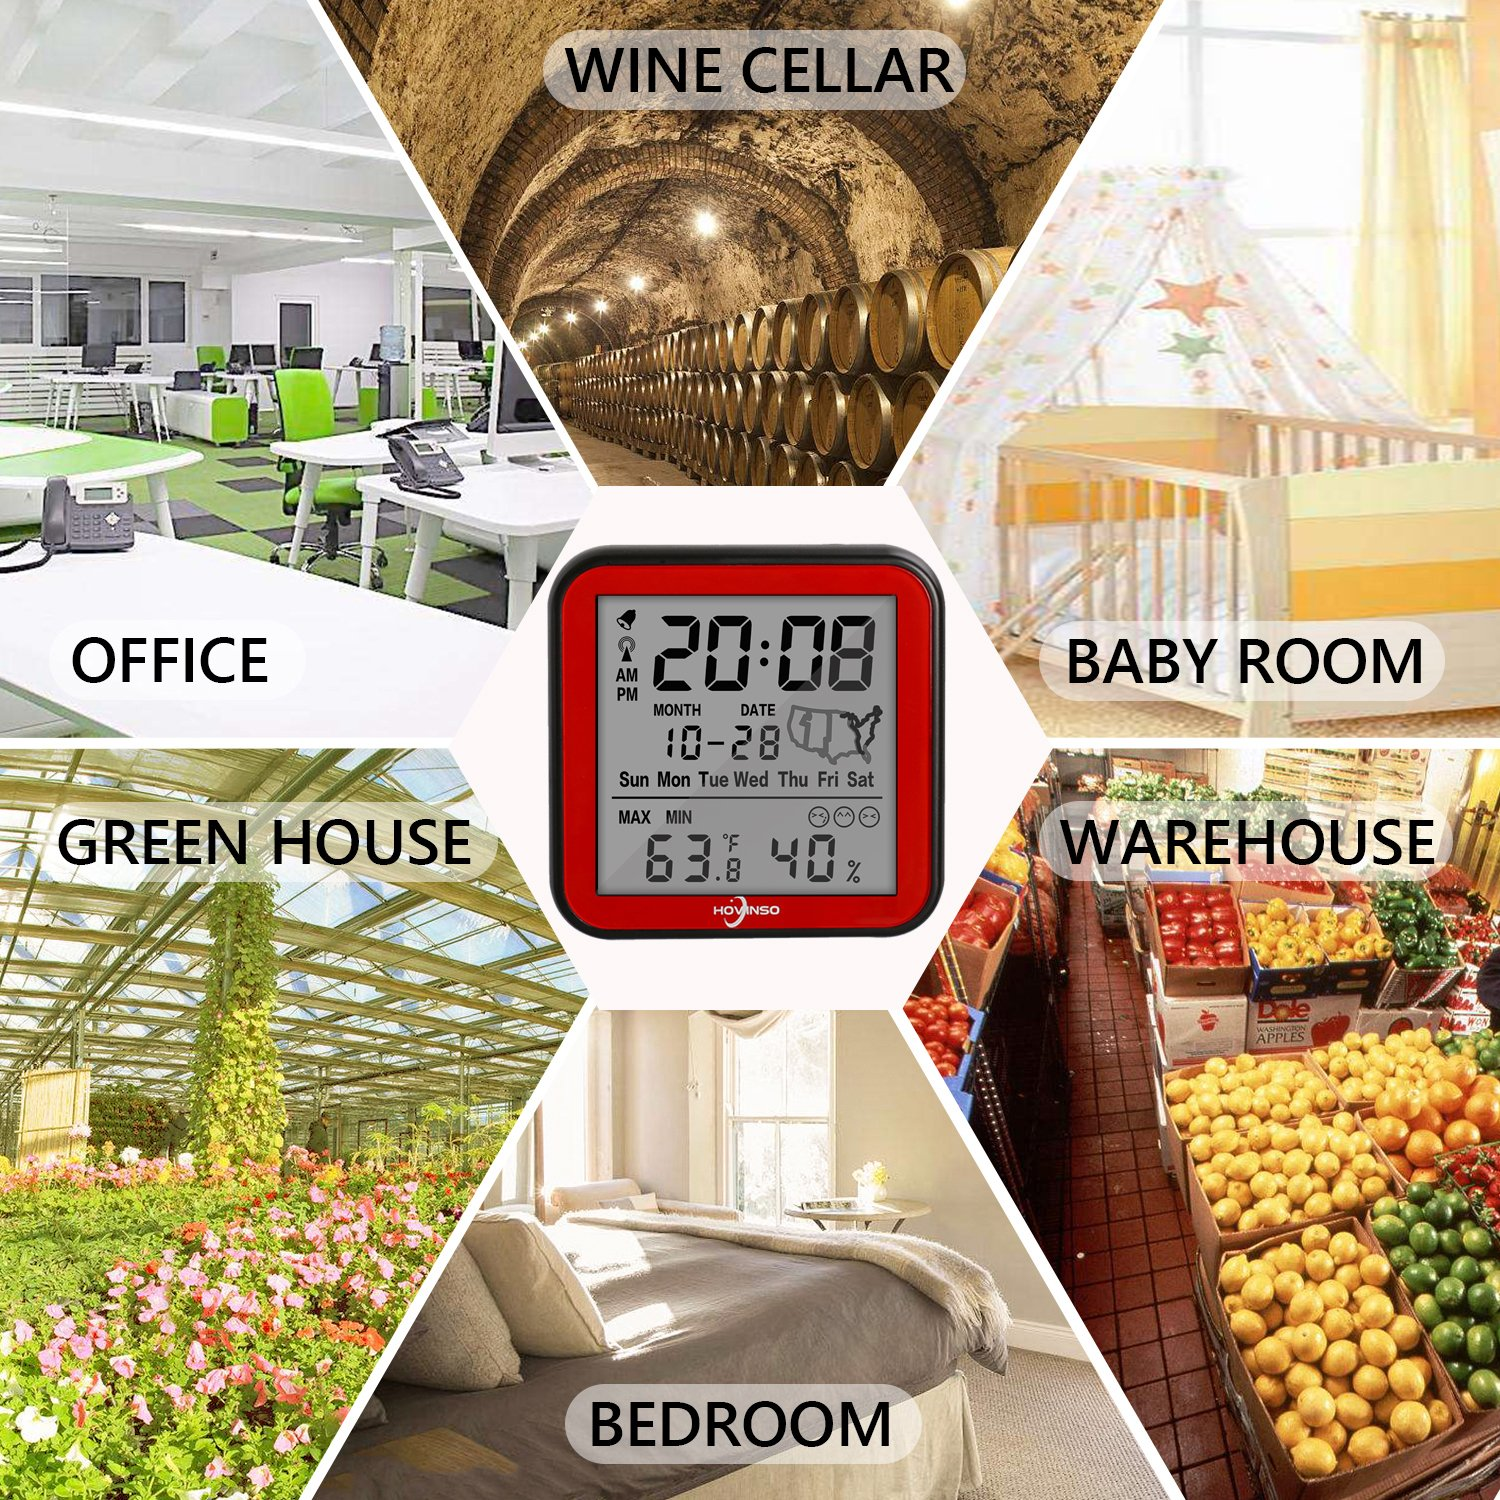 Hovinso Weather Station Clock with Temperature and Humidity Monitor, Indoor Wireless Radio Atomic Alarm Clock for Home Bedroom by Hovinso (Image #5)